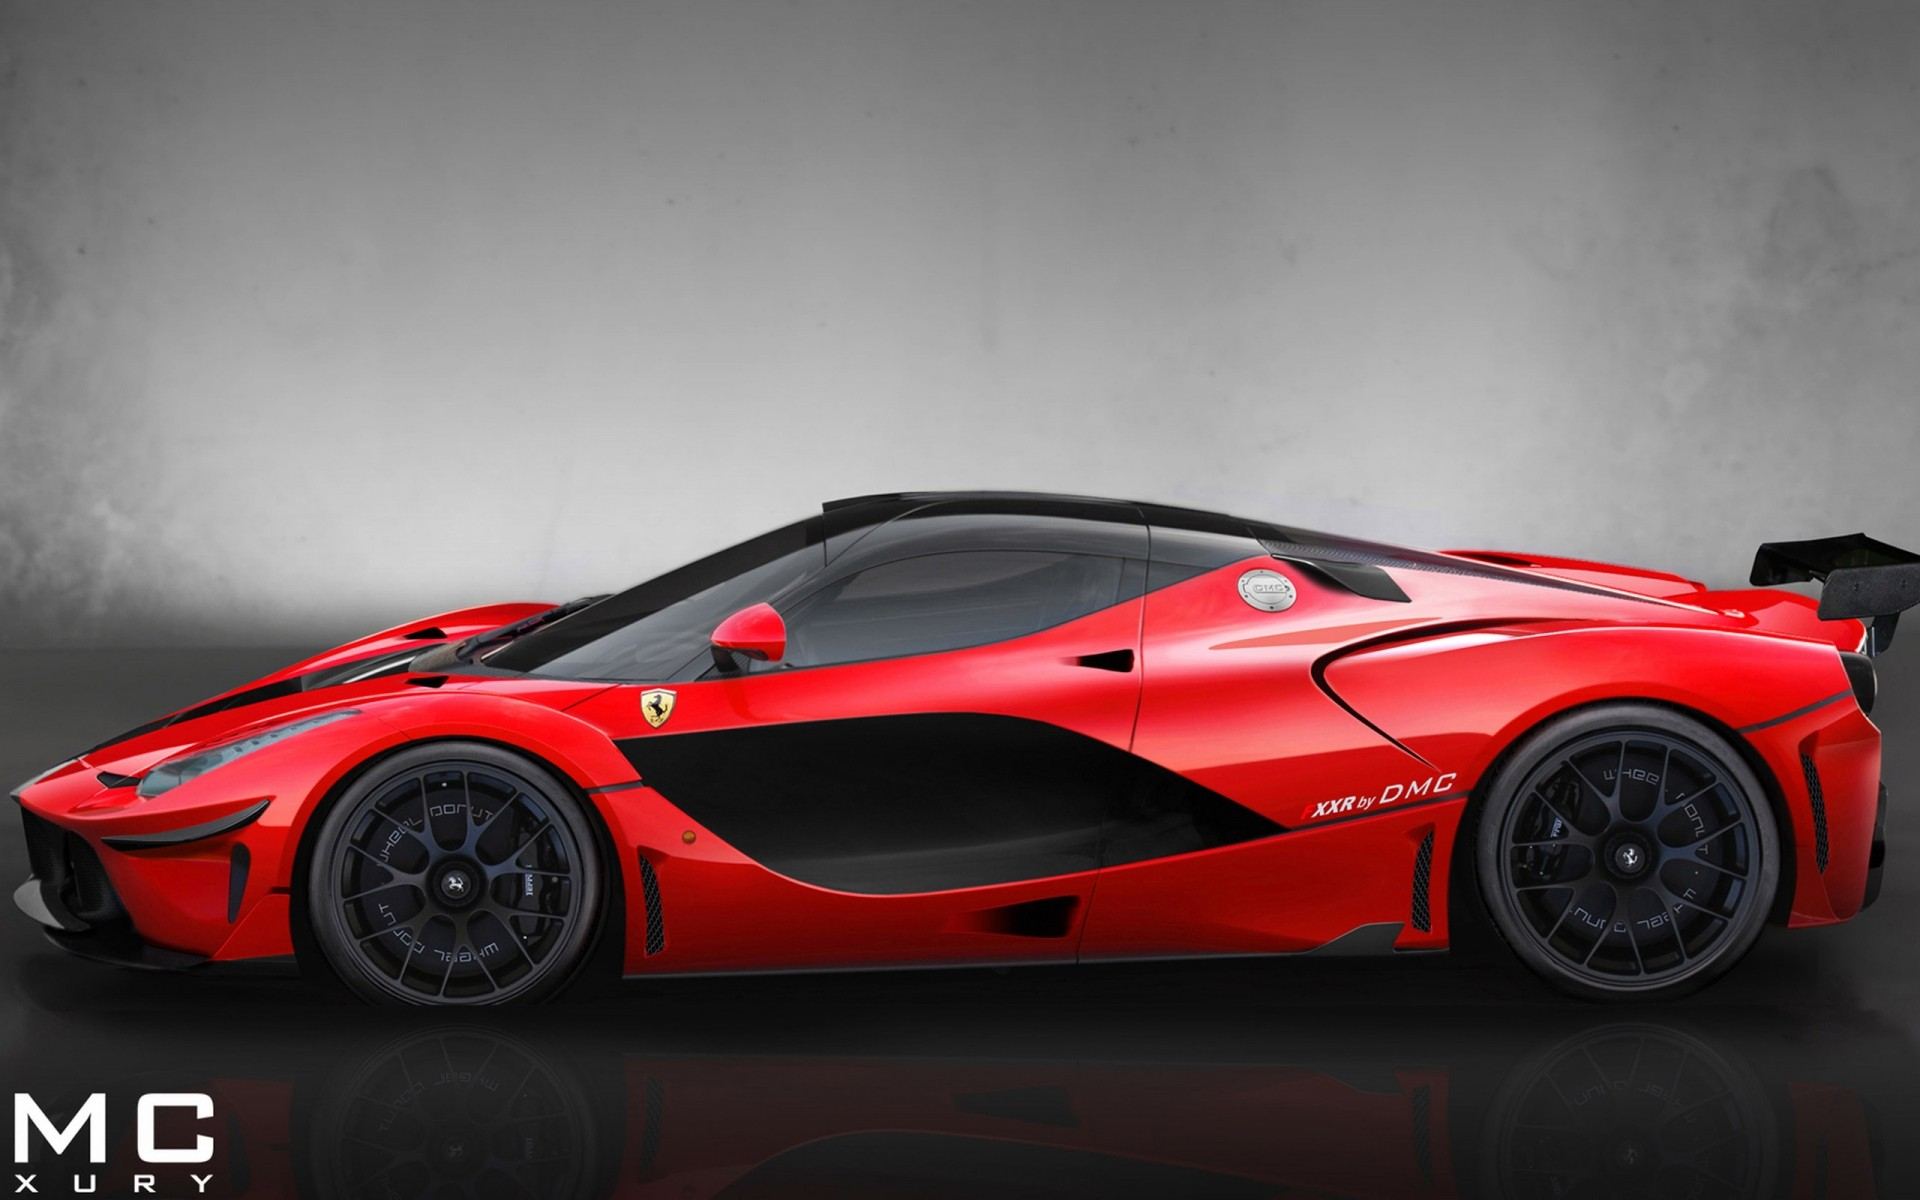 ferrari car vehicle race wheel automotive fast competition drive transportation system coupe hurry action